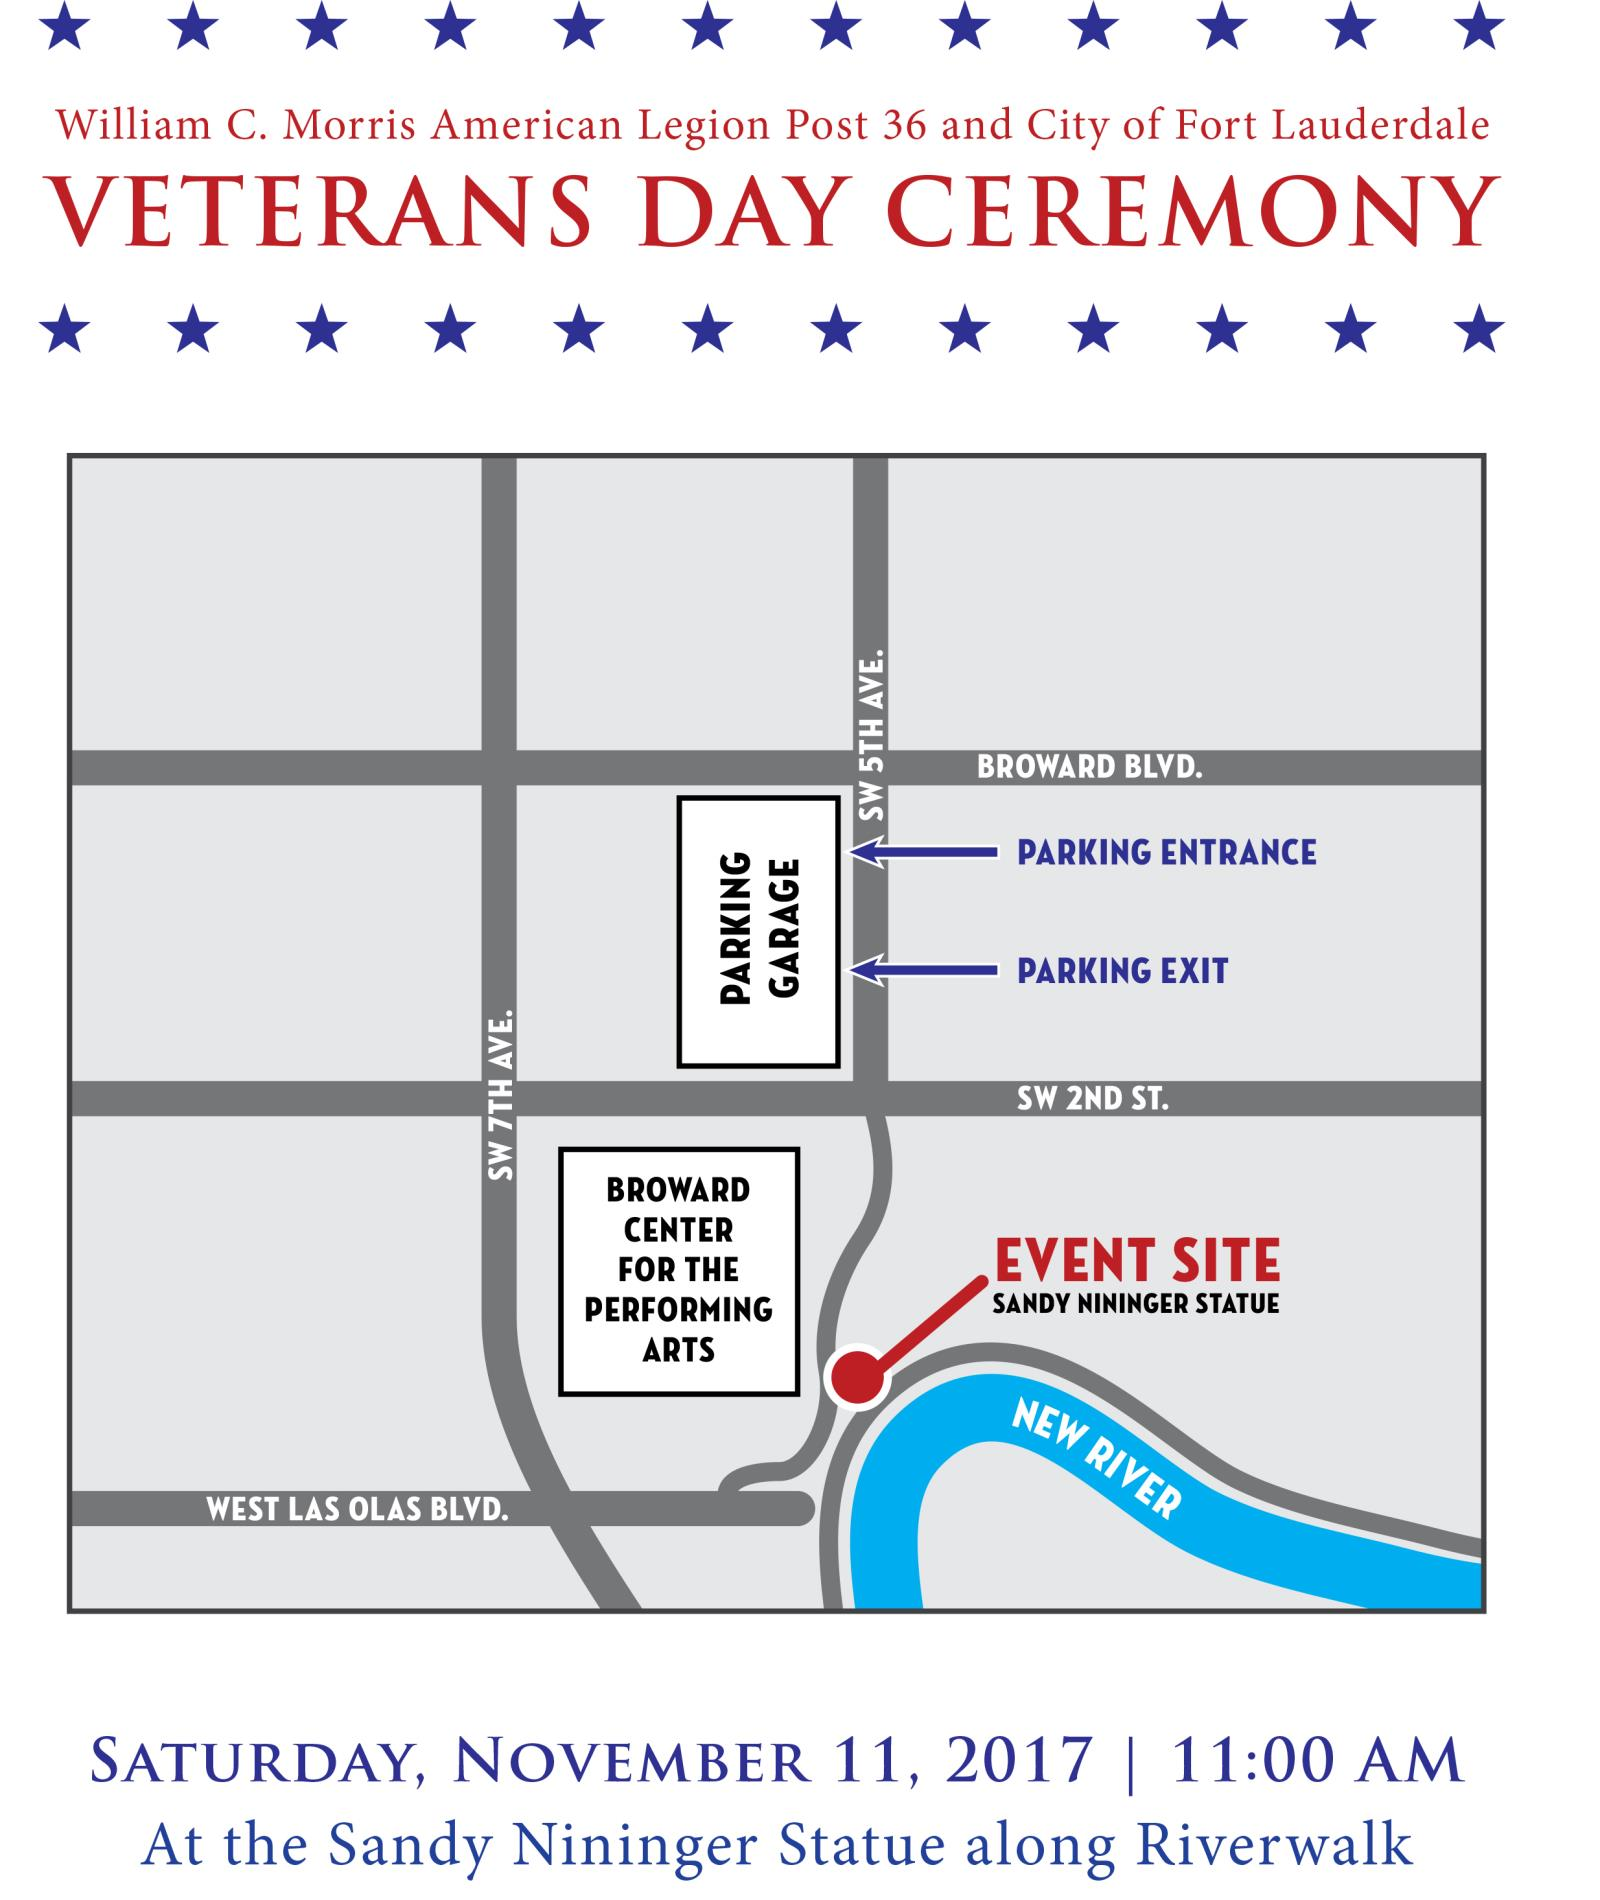 002 Veterans Day Ceremony 11-11-17